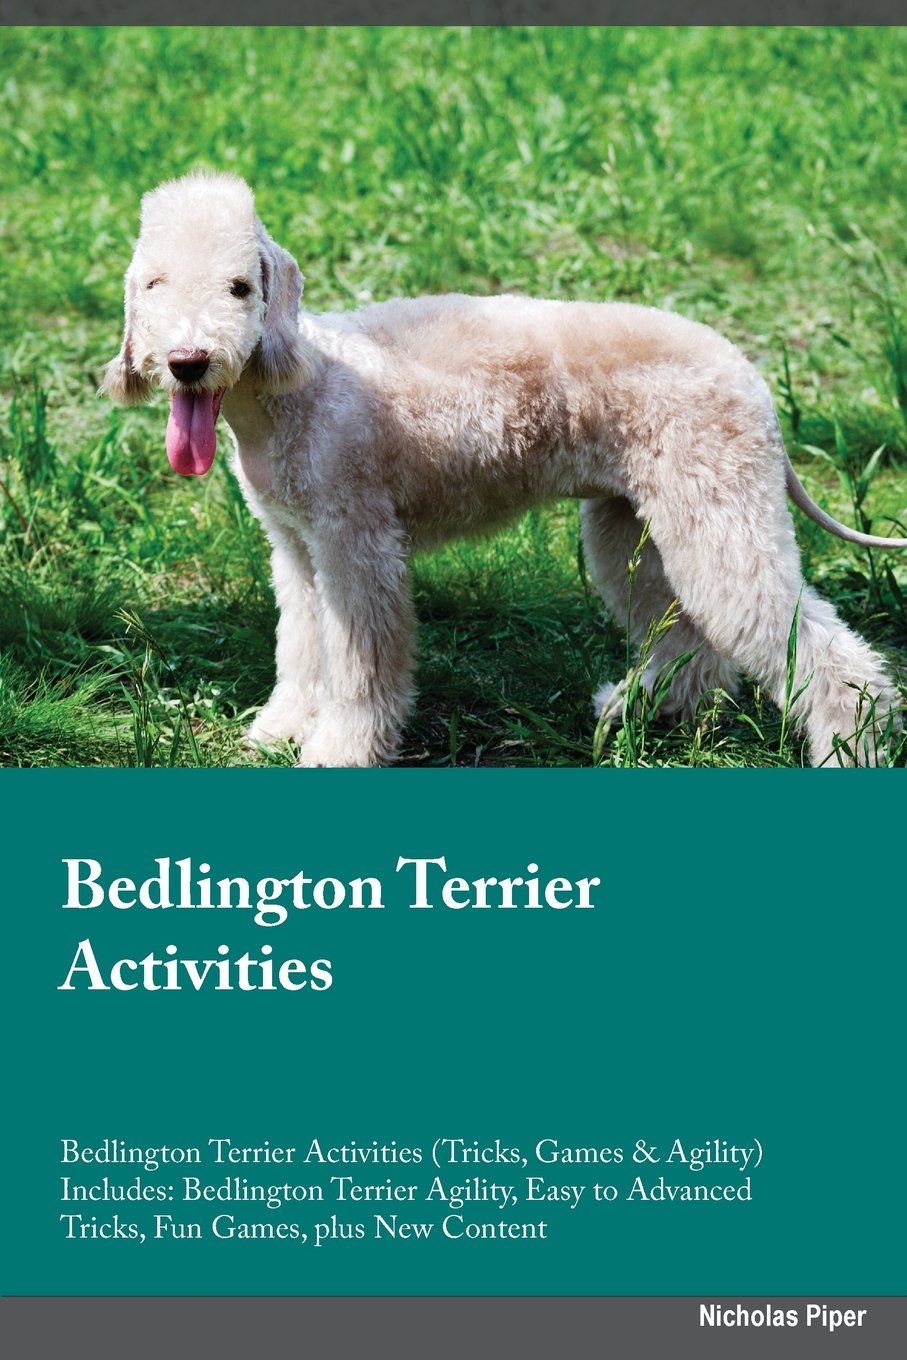 Bedlington Terrier Activities Bedlington Terrier Activities (Tricks, Games & Agility) Includes: Bedlington Terrier…